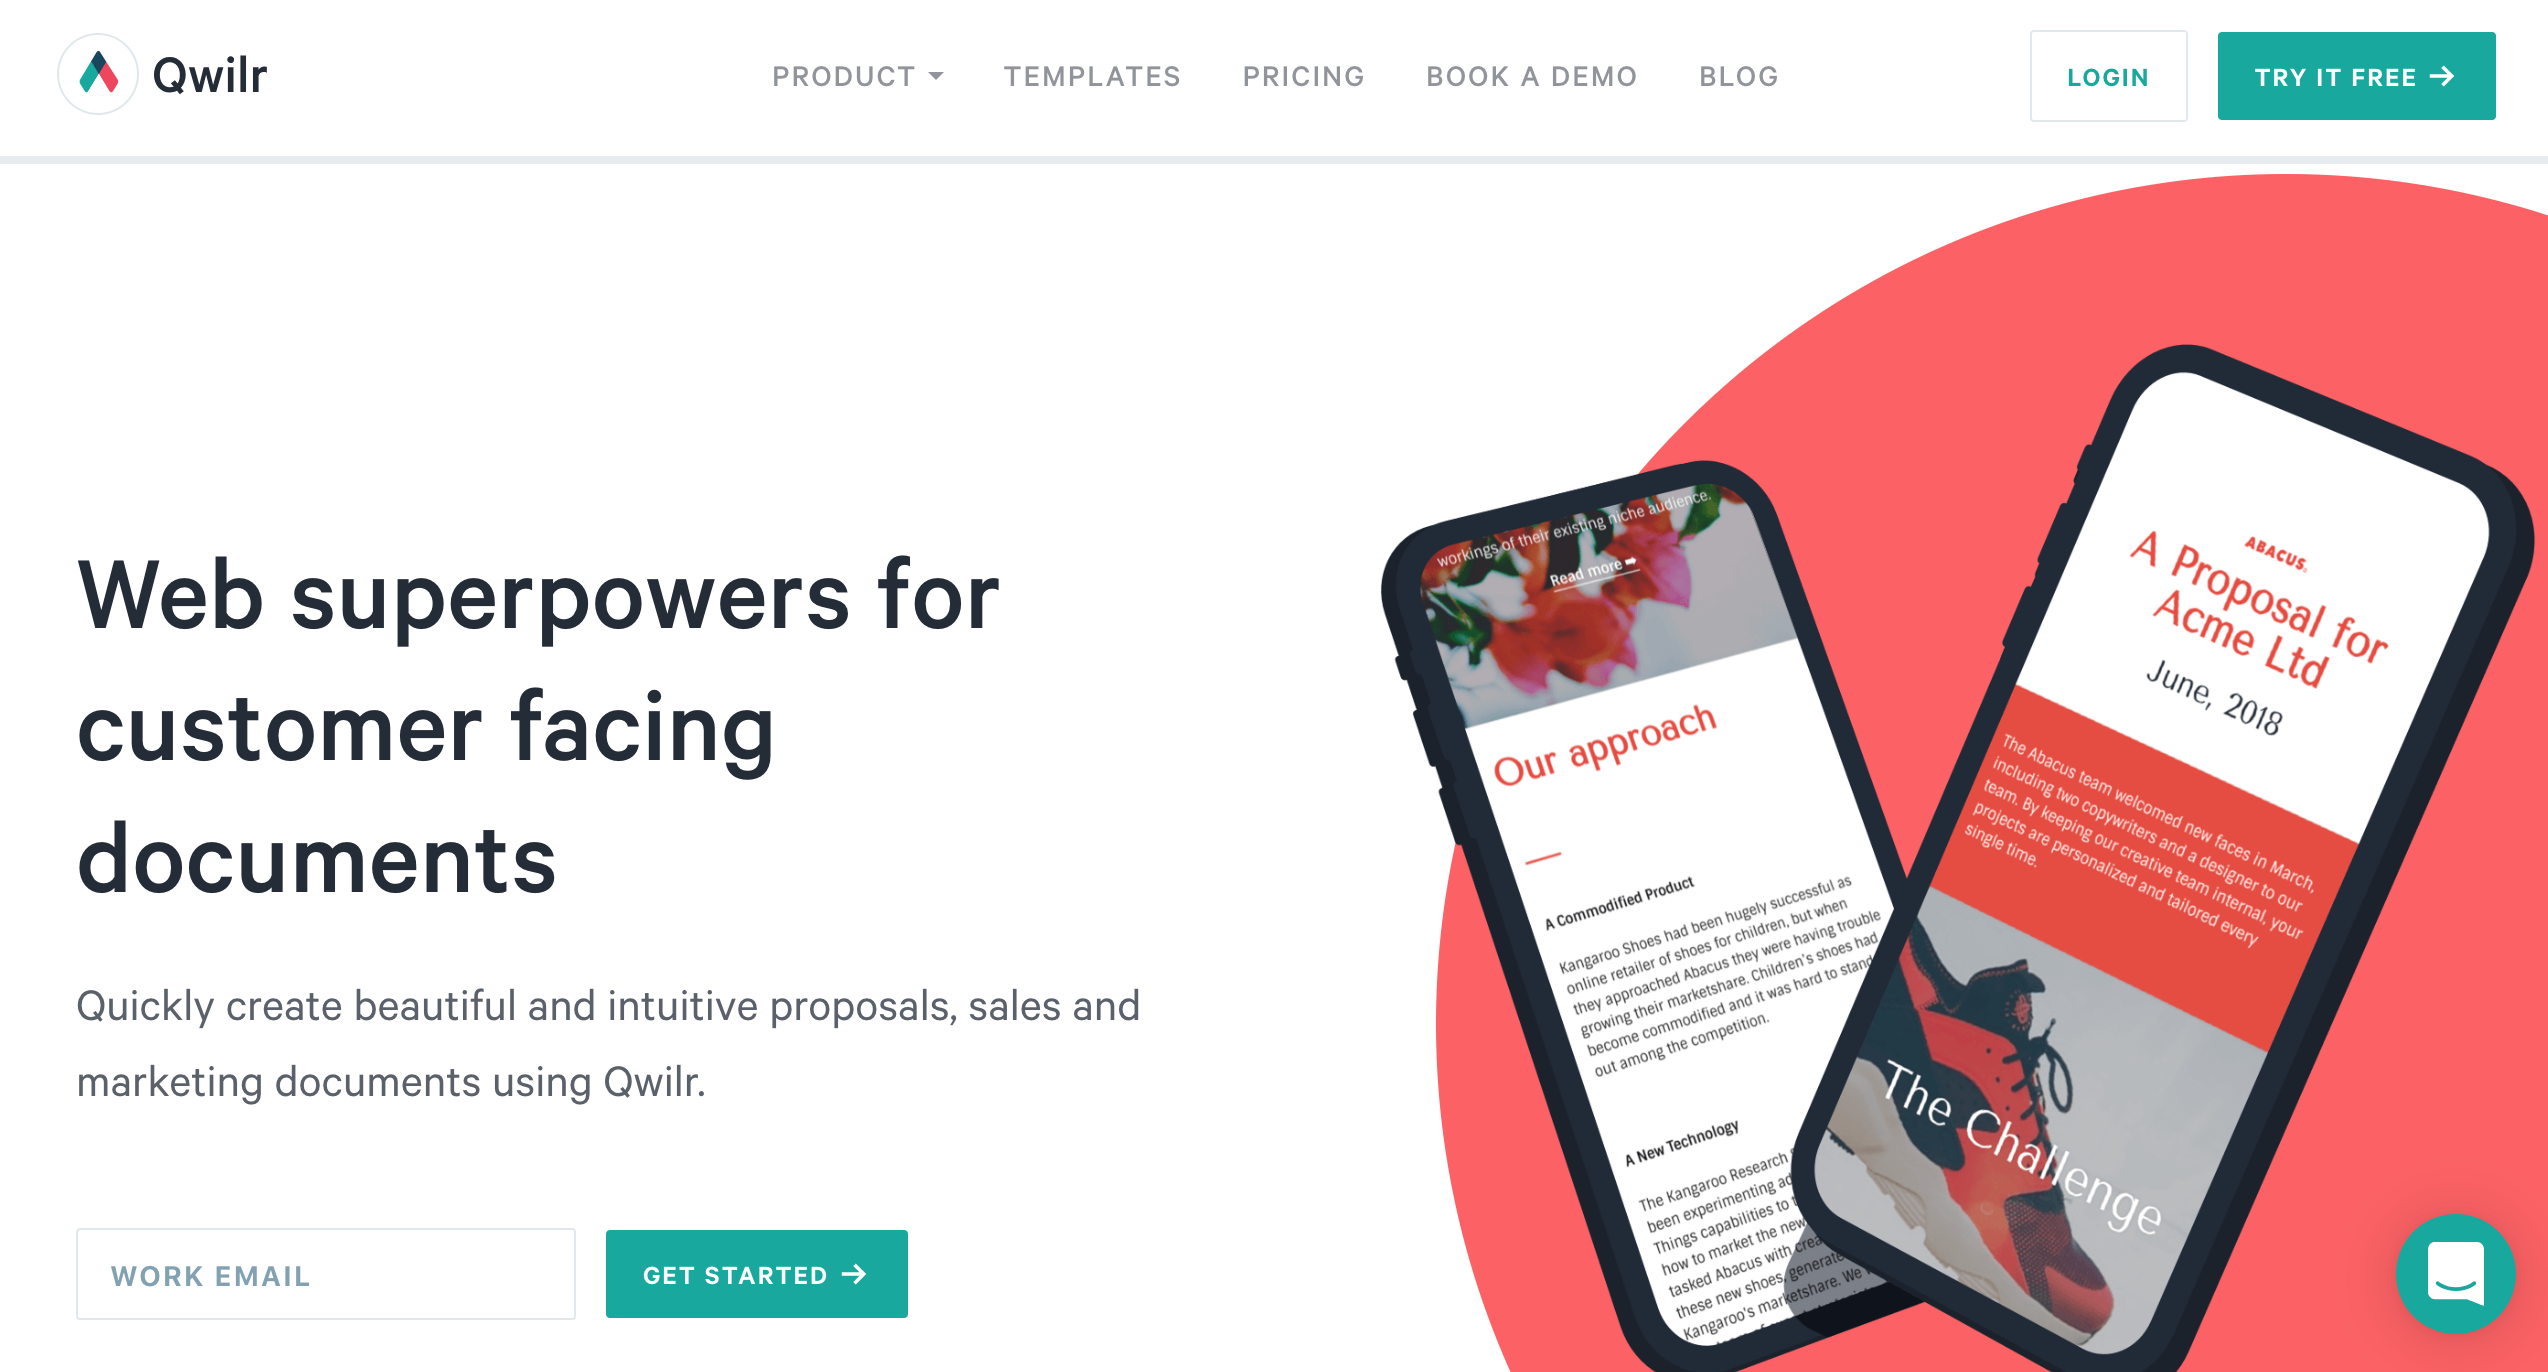 39 must-have tools and apps for freelance designers | Webflow Blog